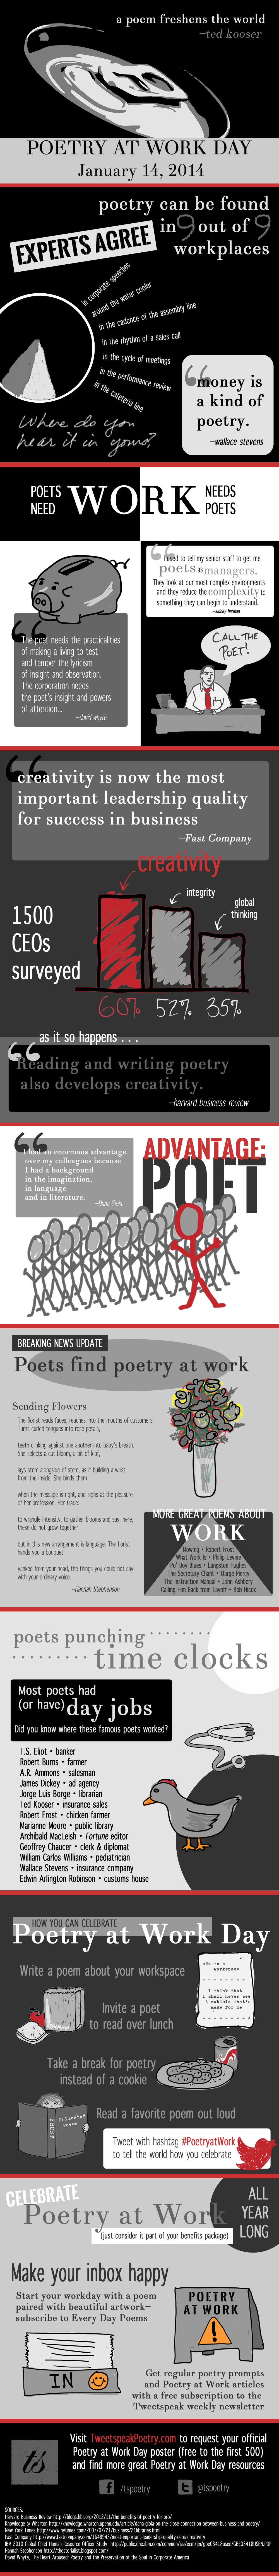 Poetry-at-work-day-infographic